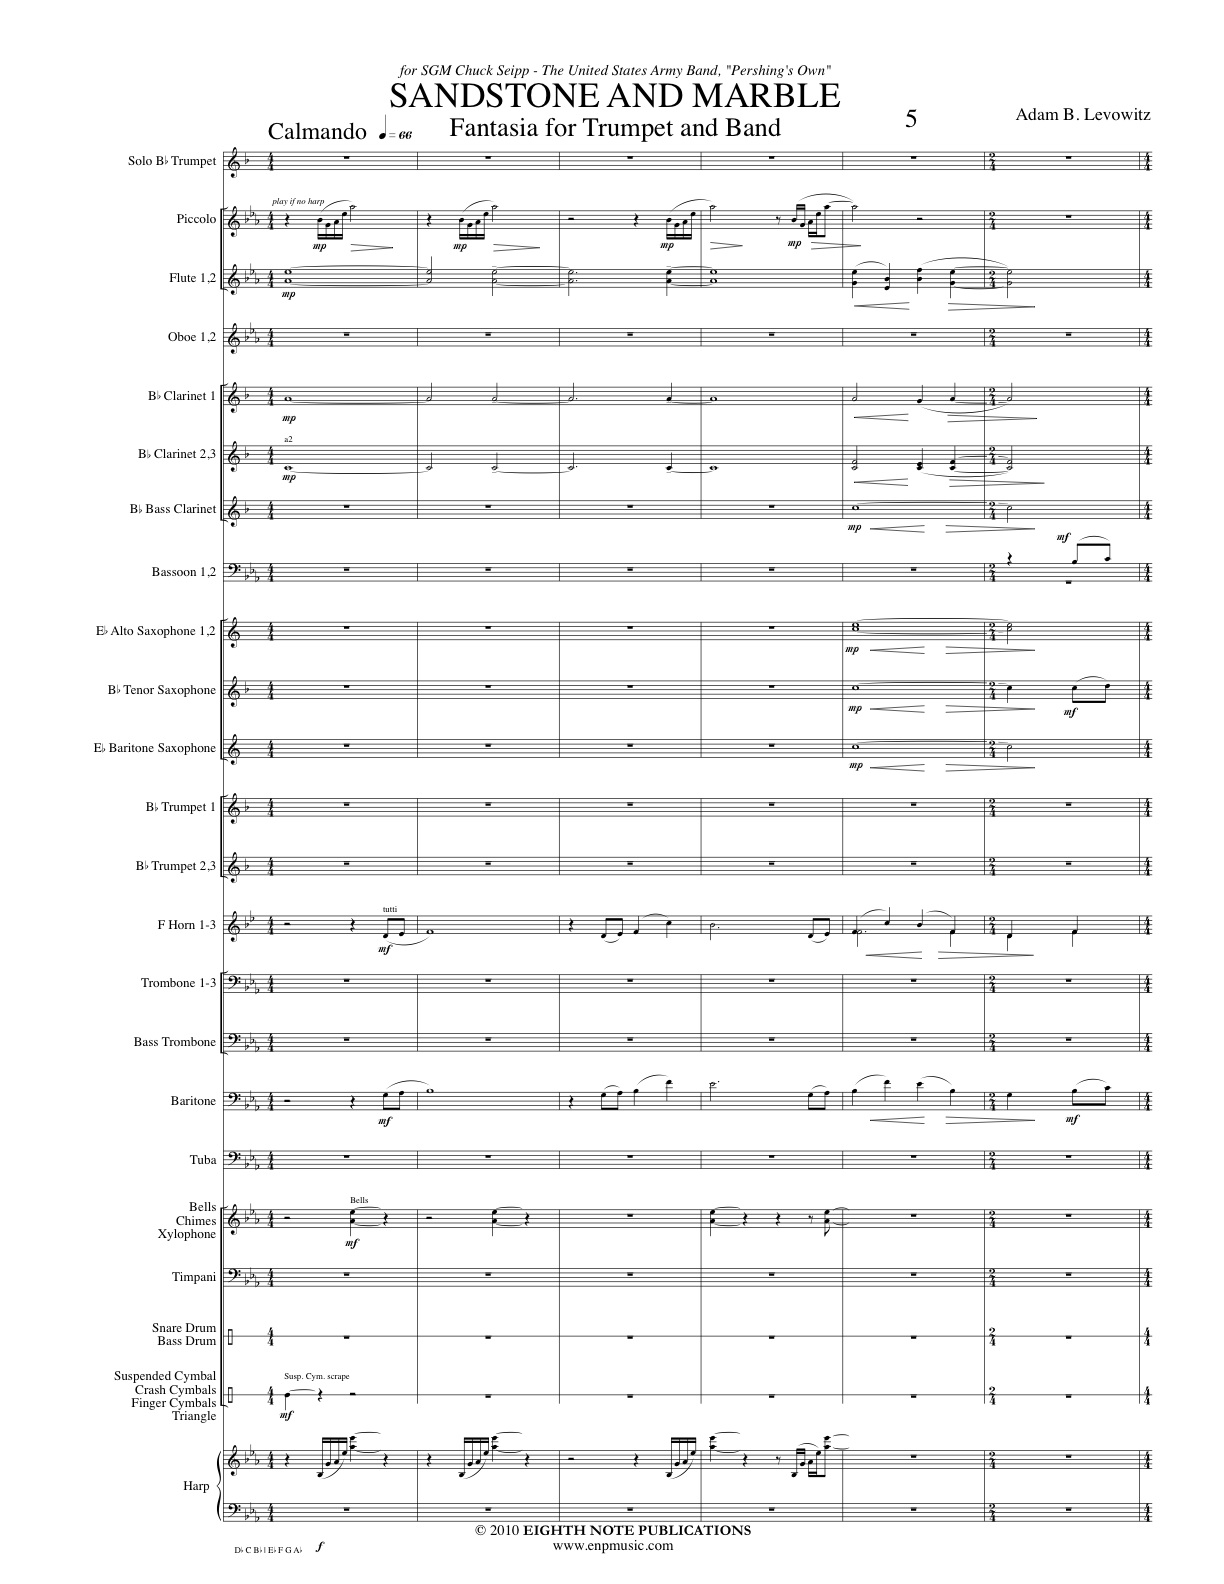 Sandstone and Marble - Fantasia for Trumpet and Band - Adam B. Levowitz